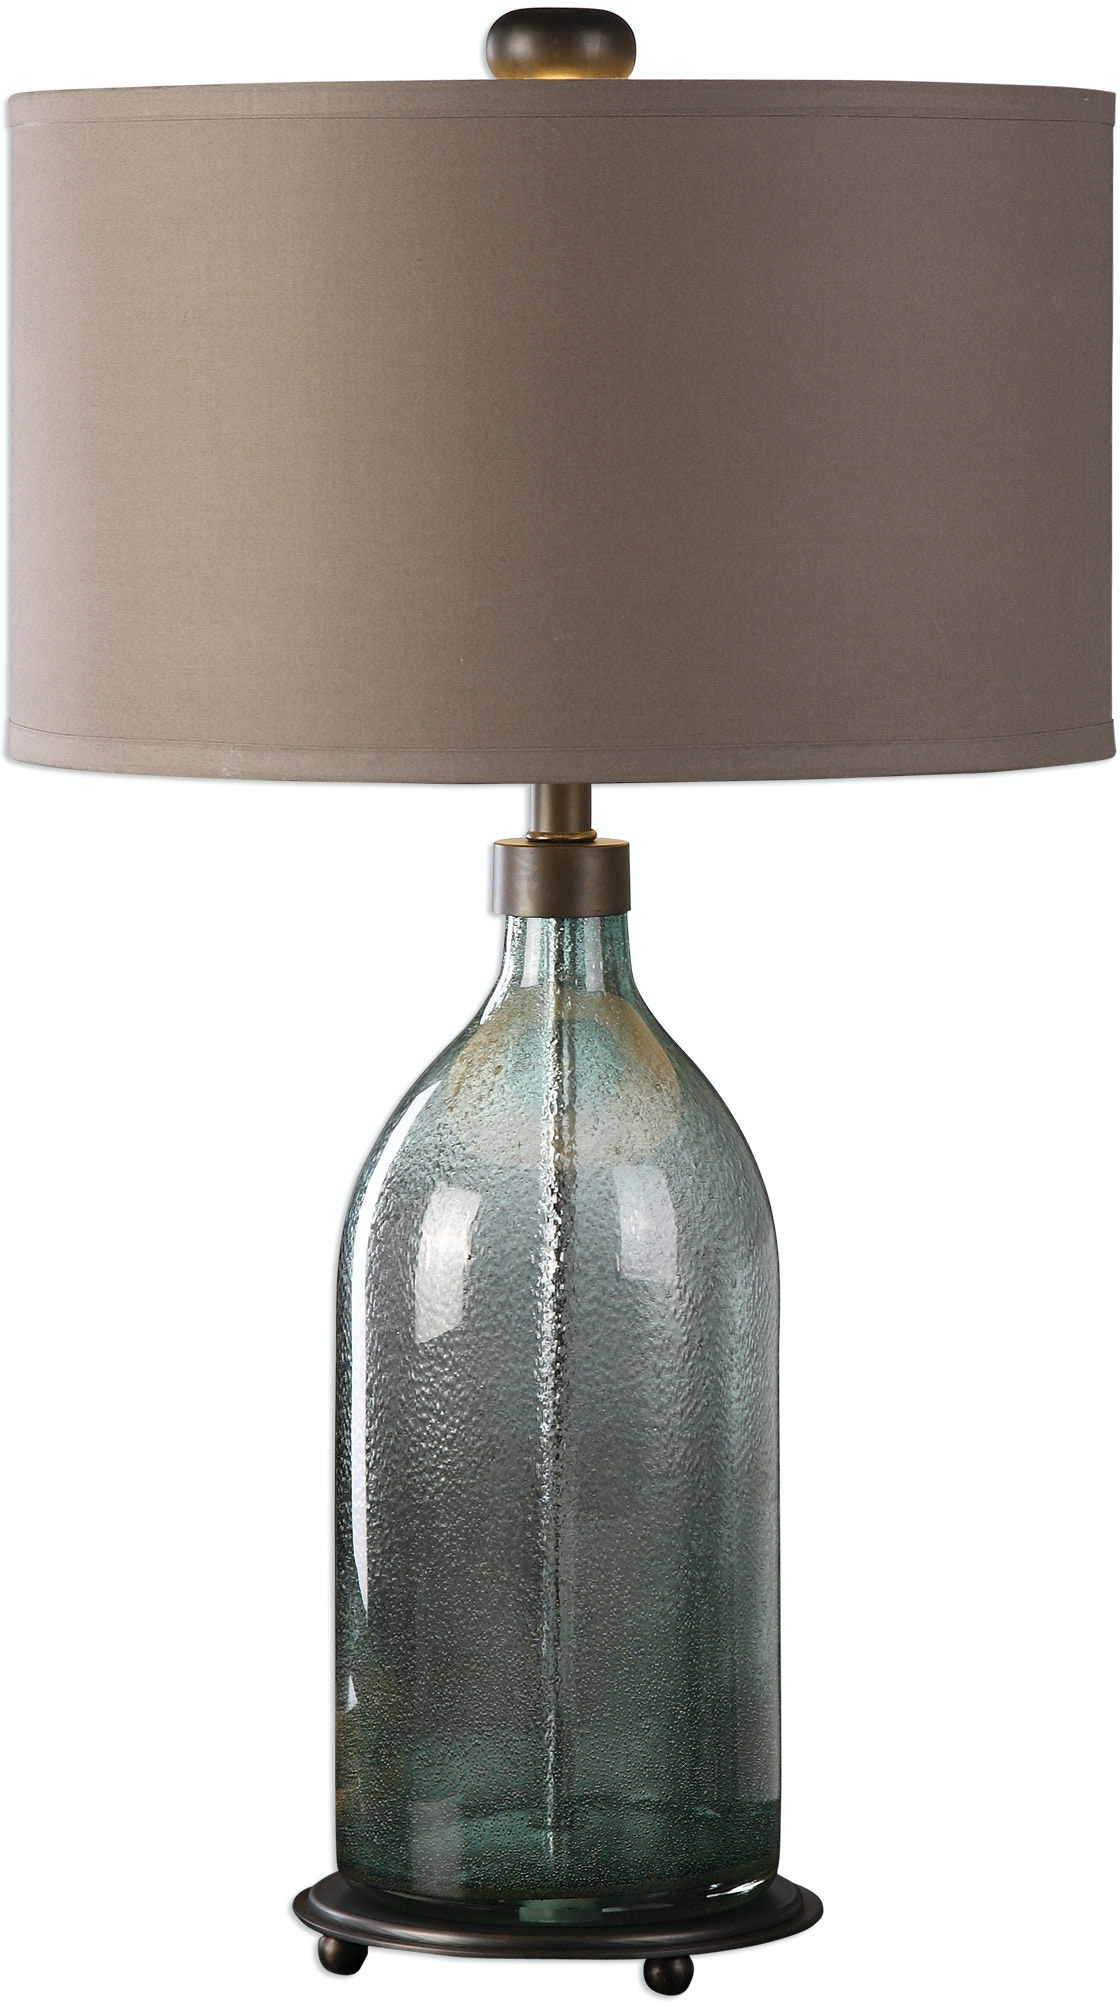 Uttermost Lamps and Lighting Massana Gray Glass Table Lamp